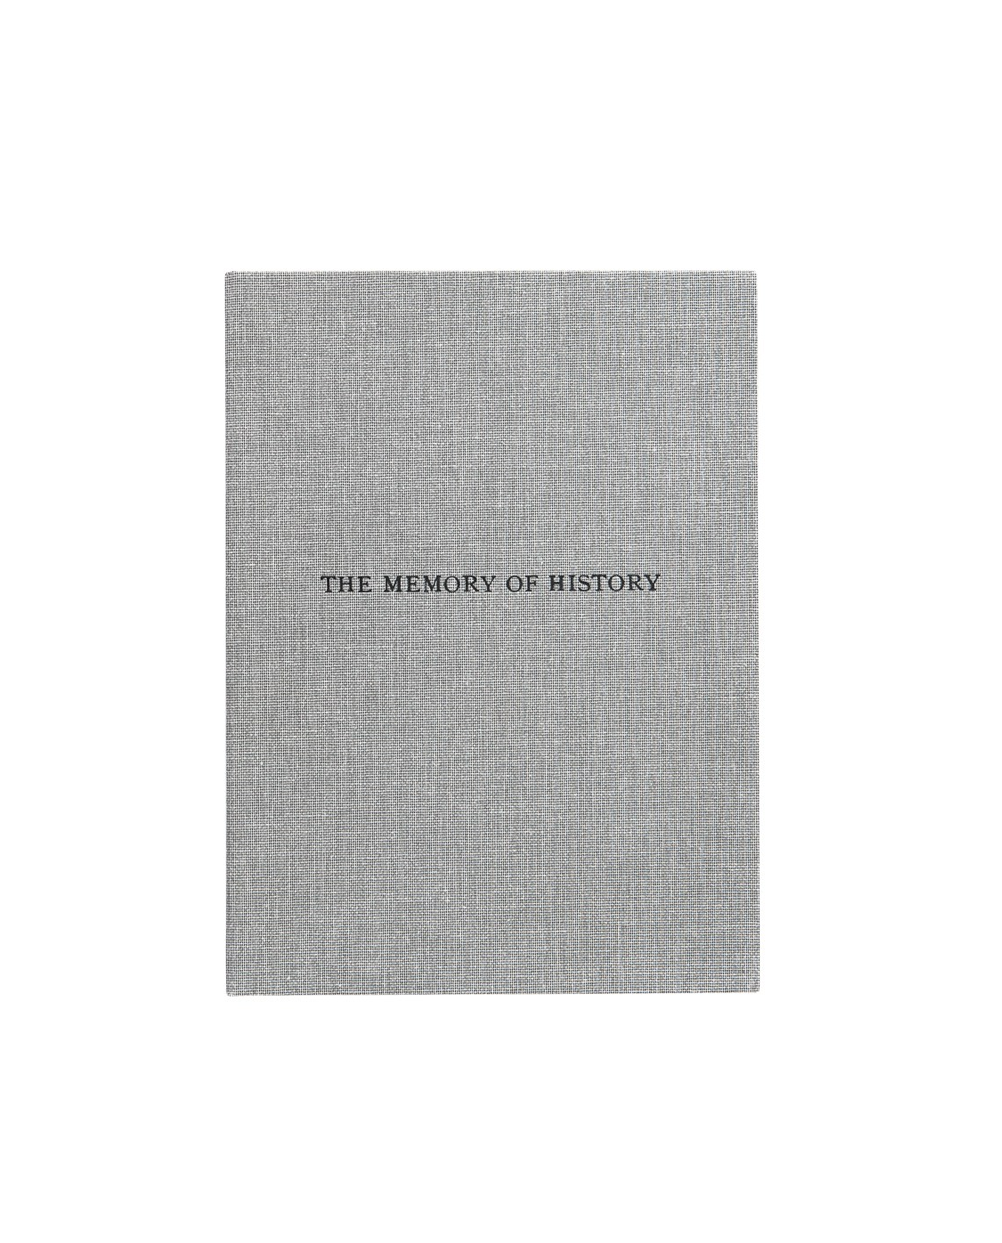 The Memory of History (2012)